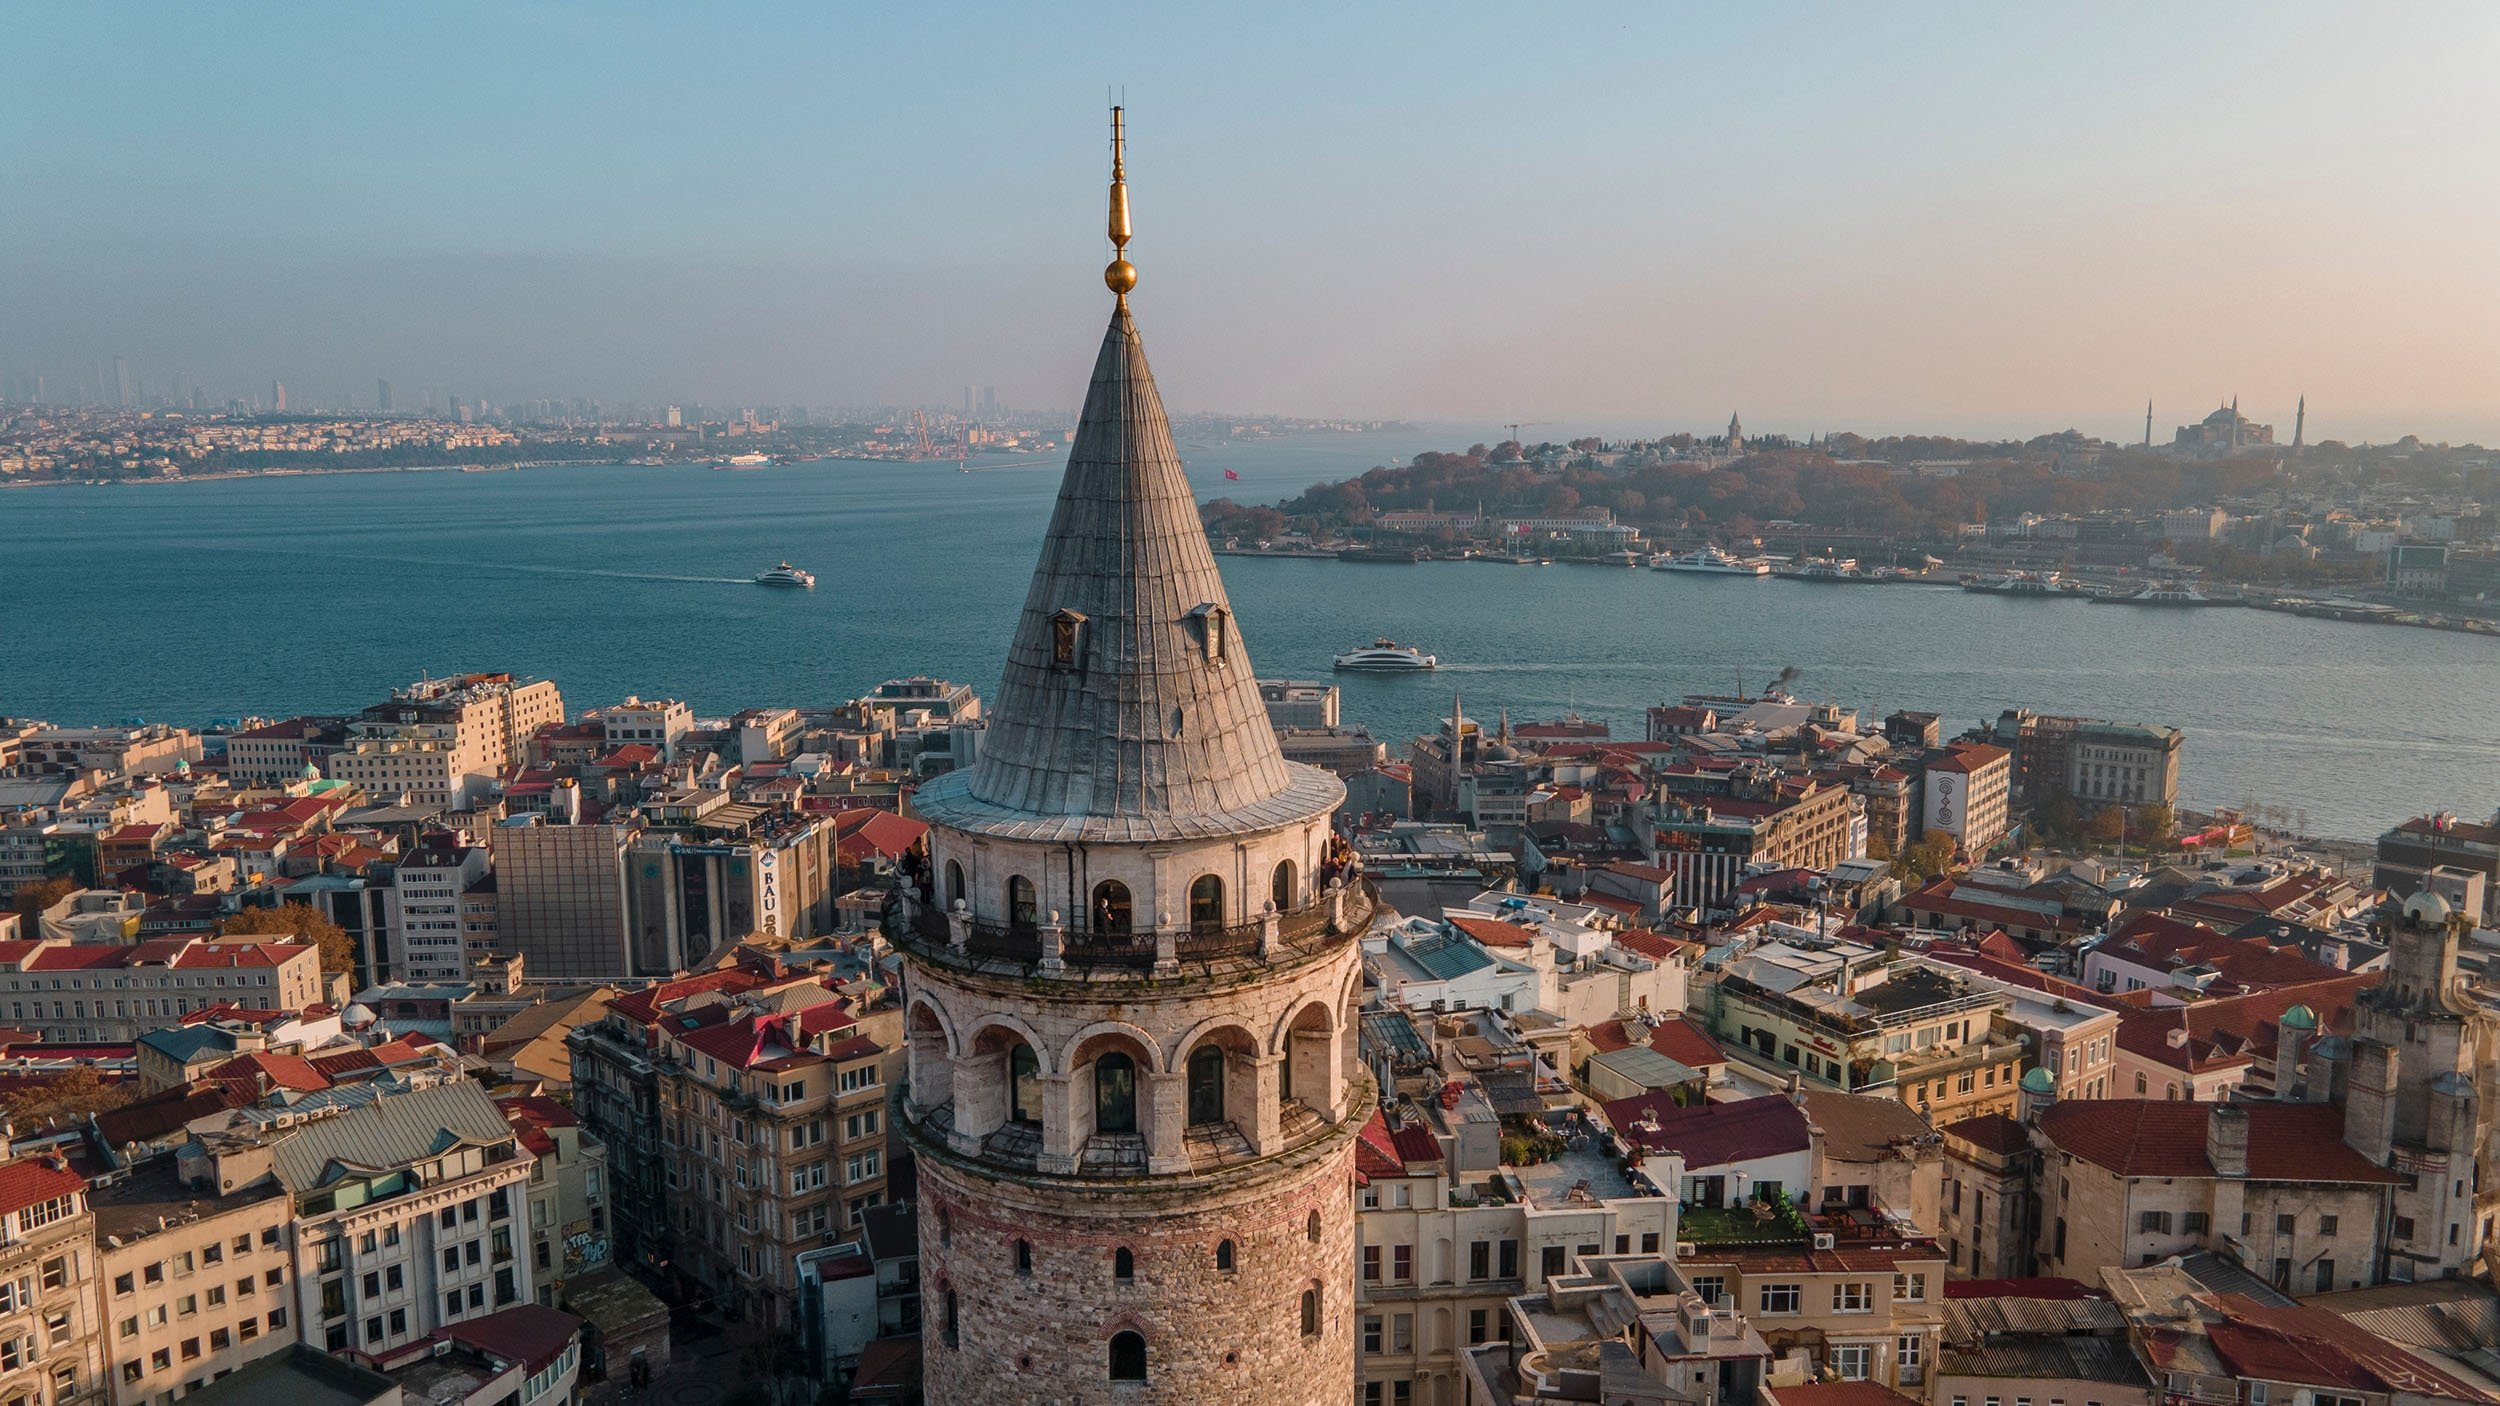 The Galata Tower, one of the historical symbols ofIstanbul, Turkey. (Shutterstock Photo)